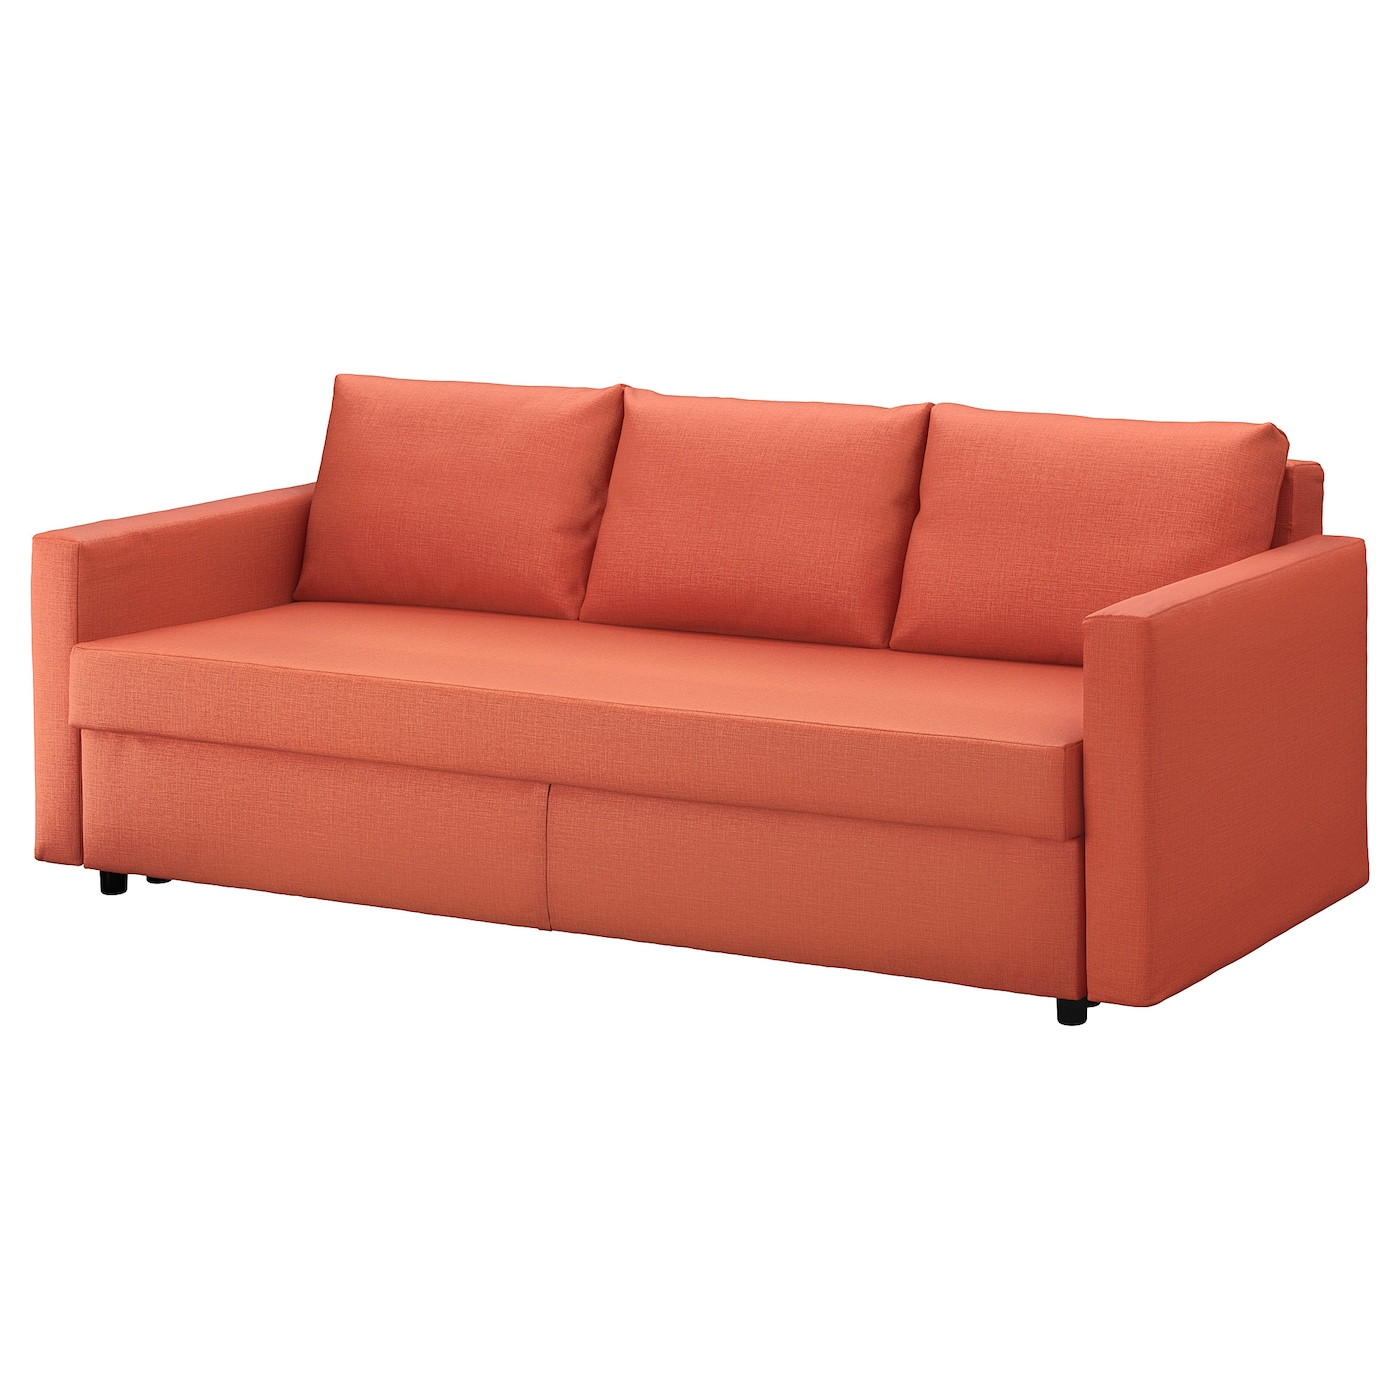 Friheten three seat sofa bed skiftebo dark orange ikea for Sofa orange